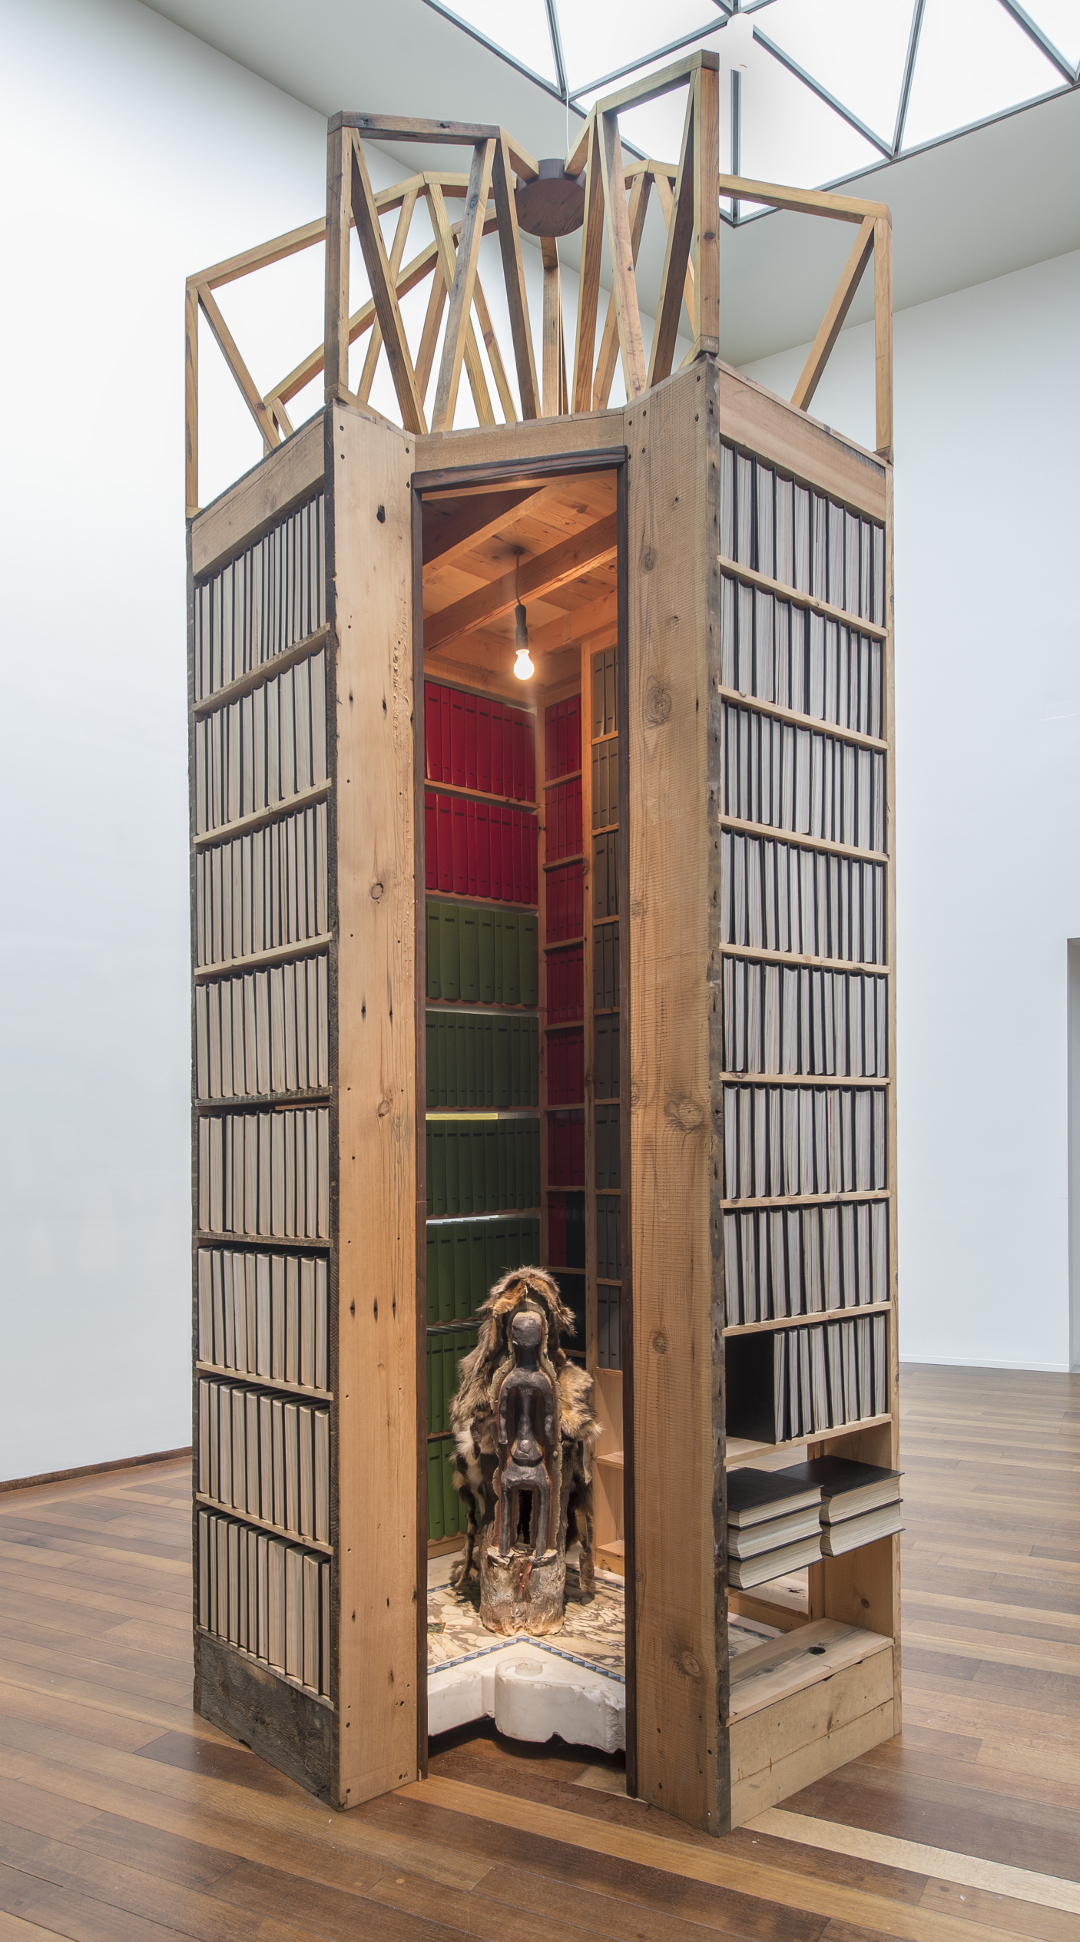 Installation view of New Egypt Sanctuary of the Holy Word and Image and Elegua in Winter, 2017 On view in Theaster Gates: The Minor Arts Courtesy of the artist, White Cube, and Regen Projects National Gallery of Art, Washington